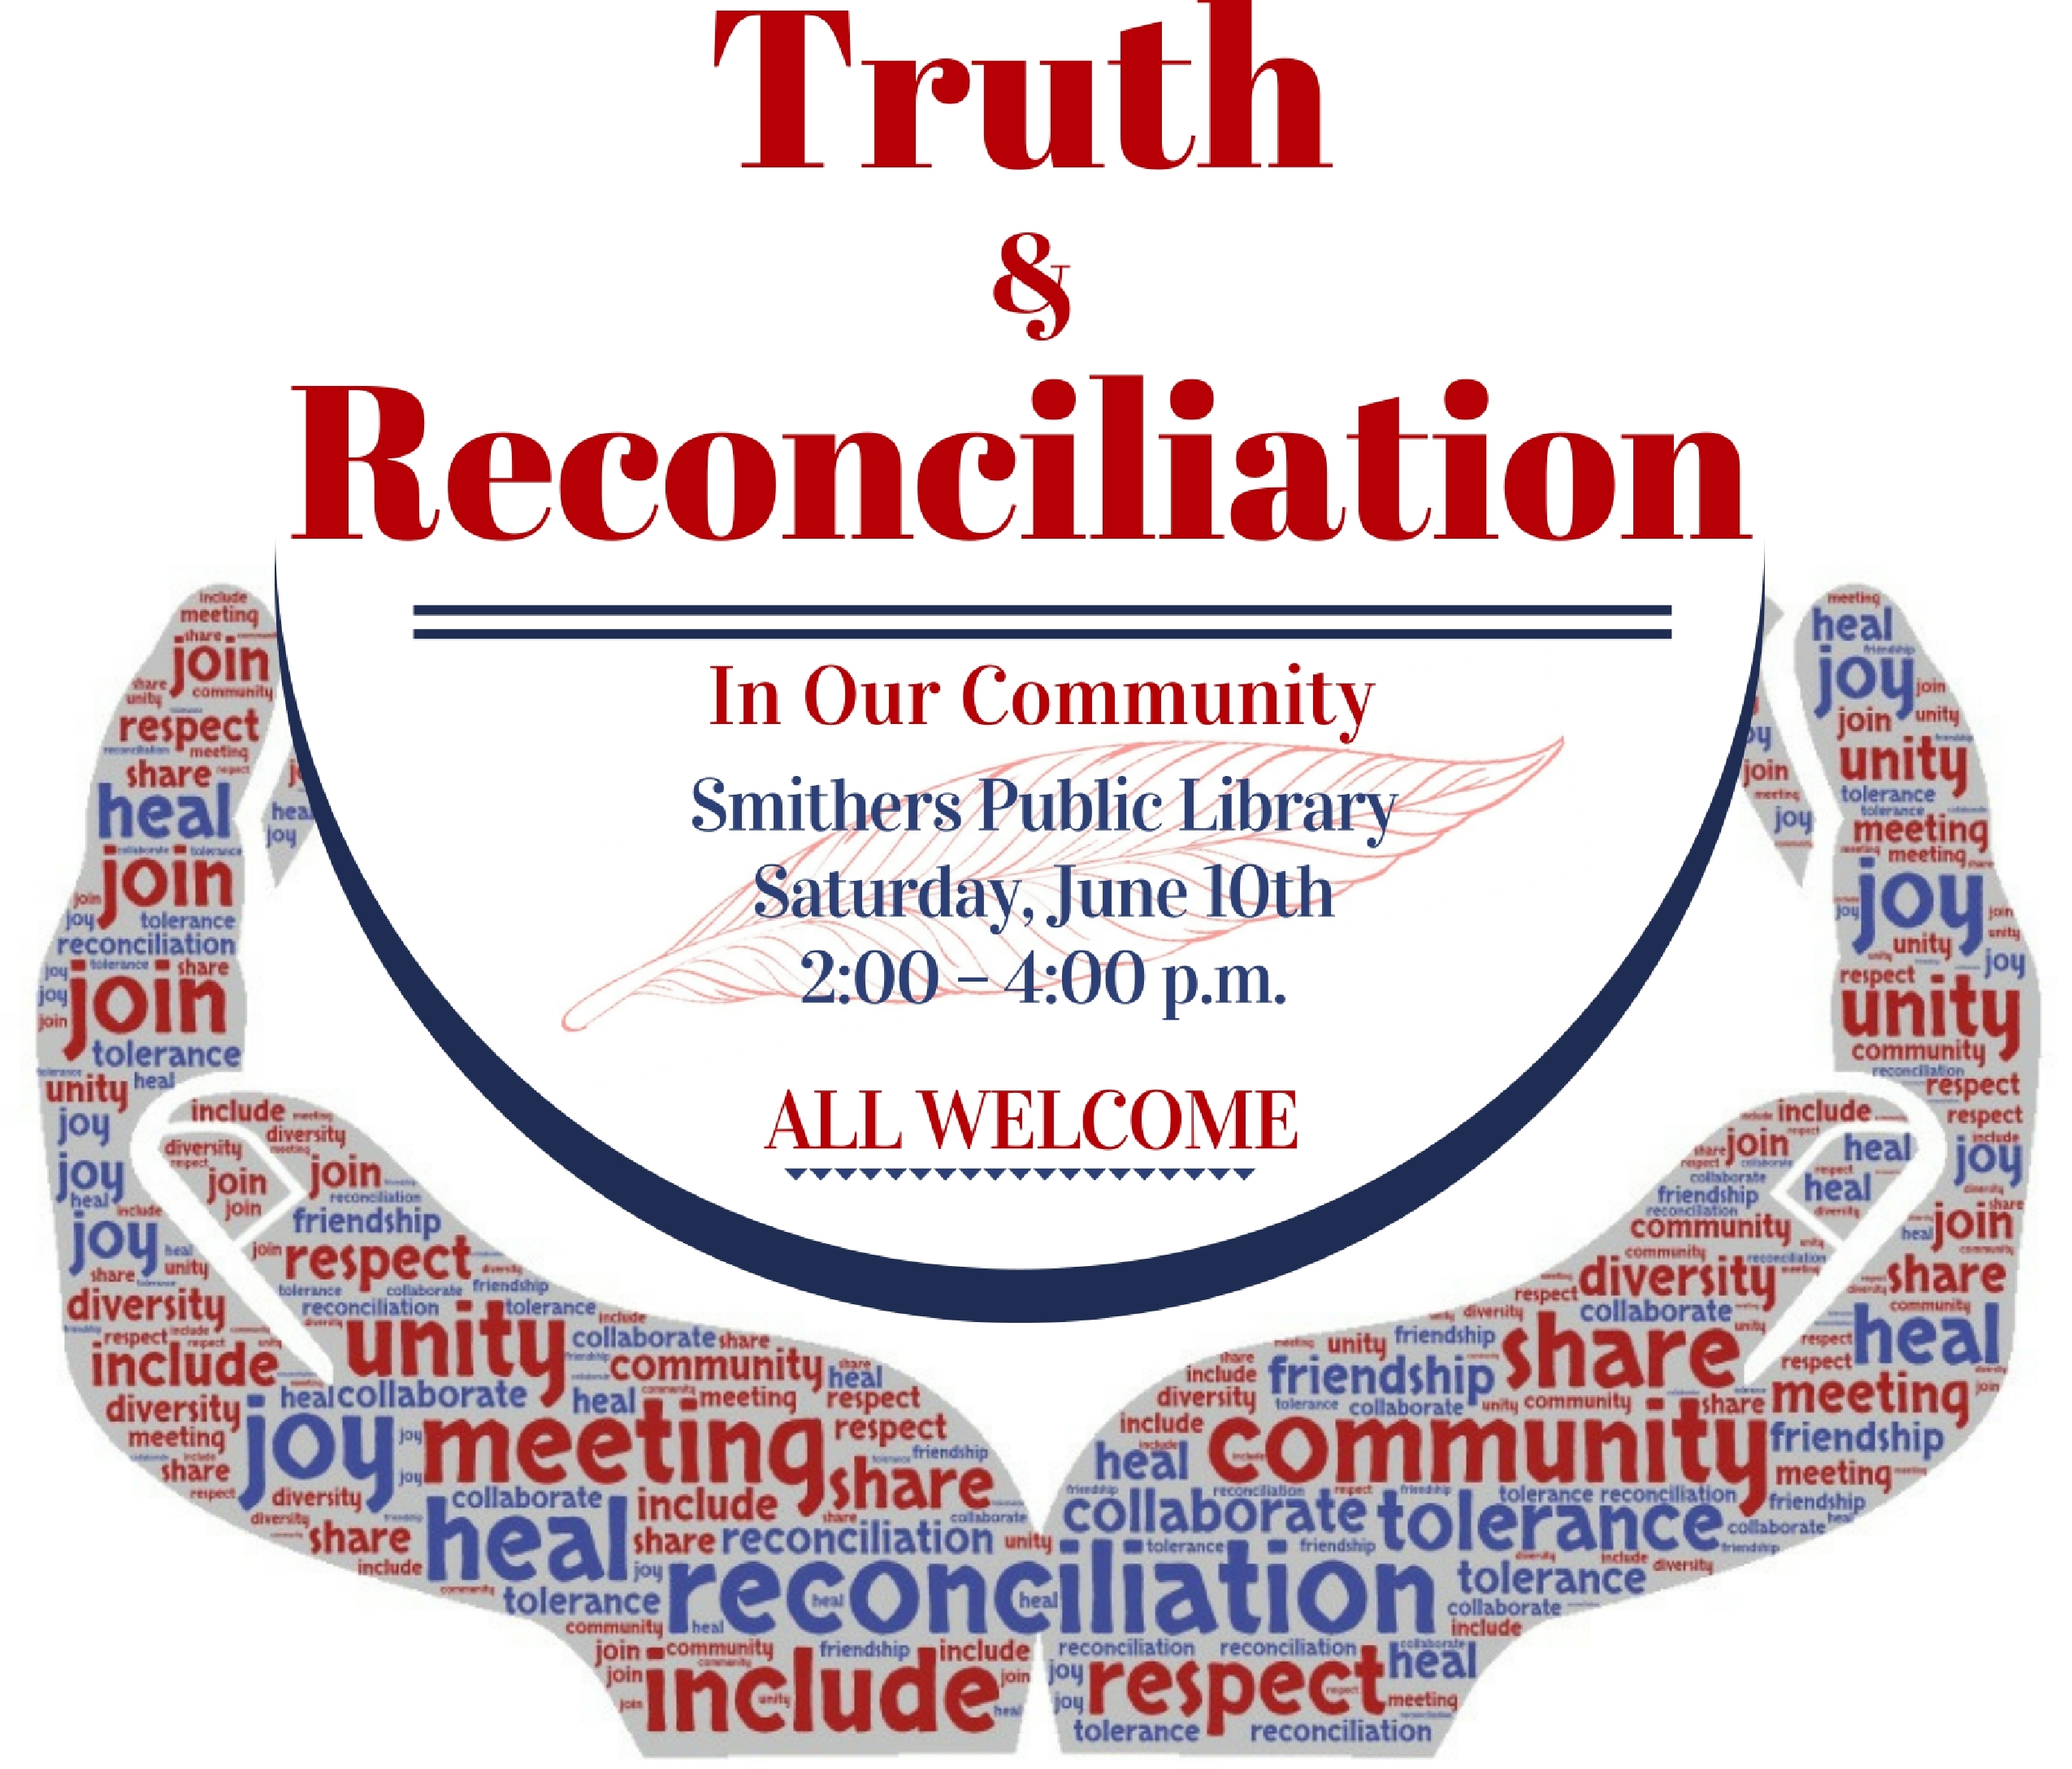 Truth and Reconciliation: In Our Community @ Smithers Public Library